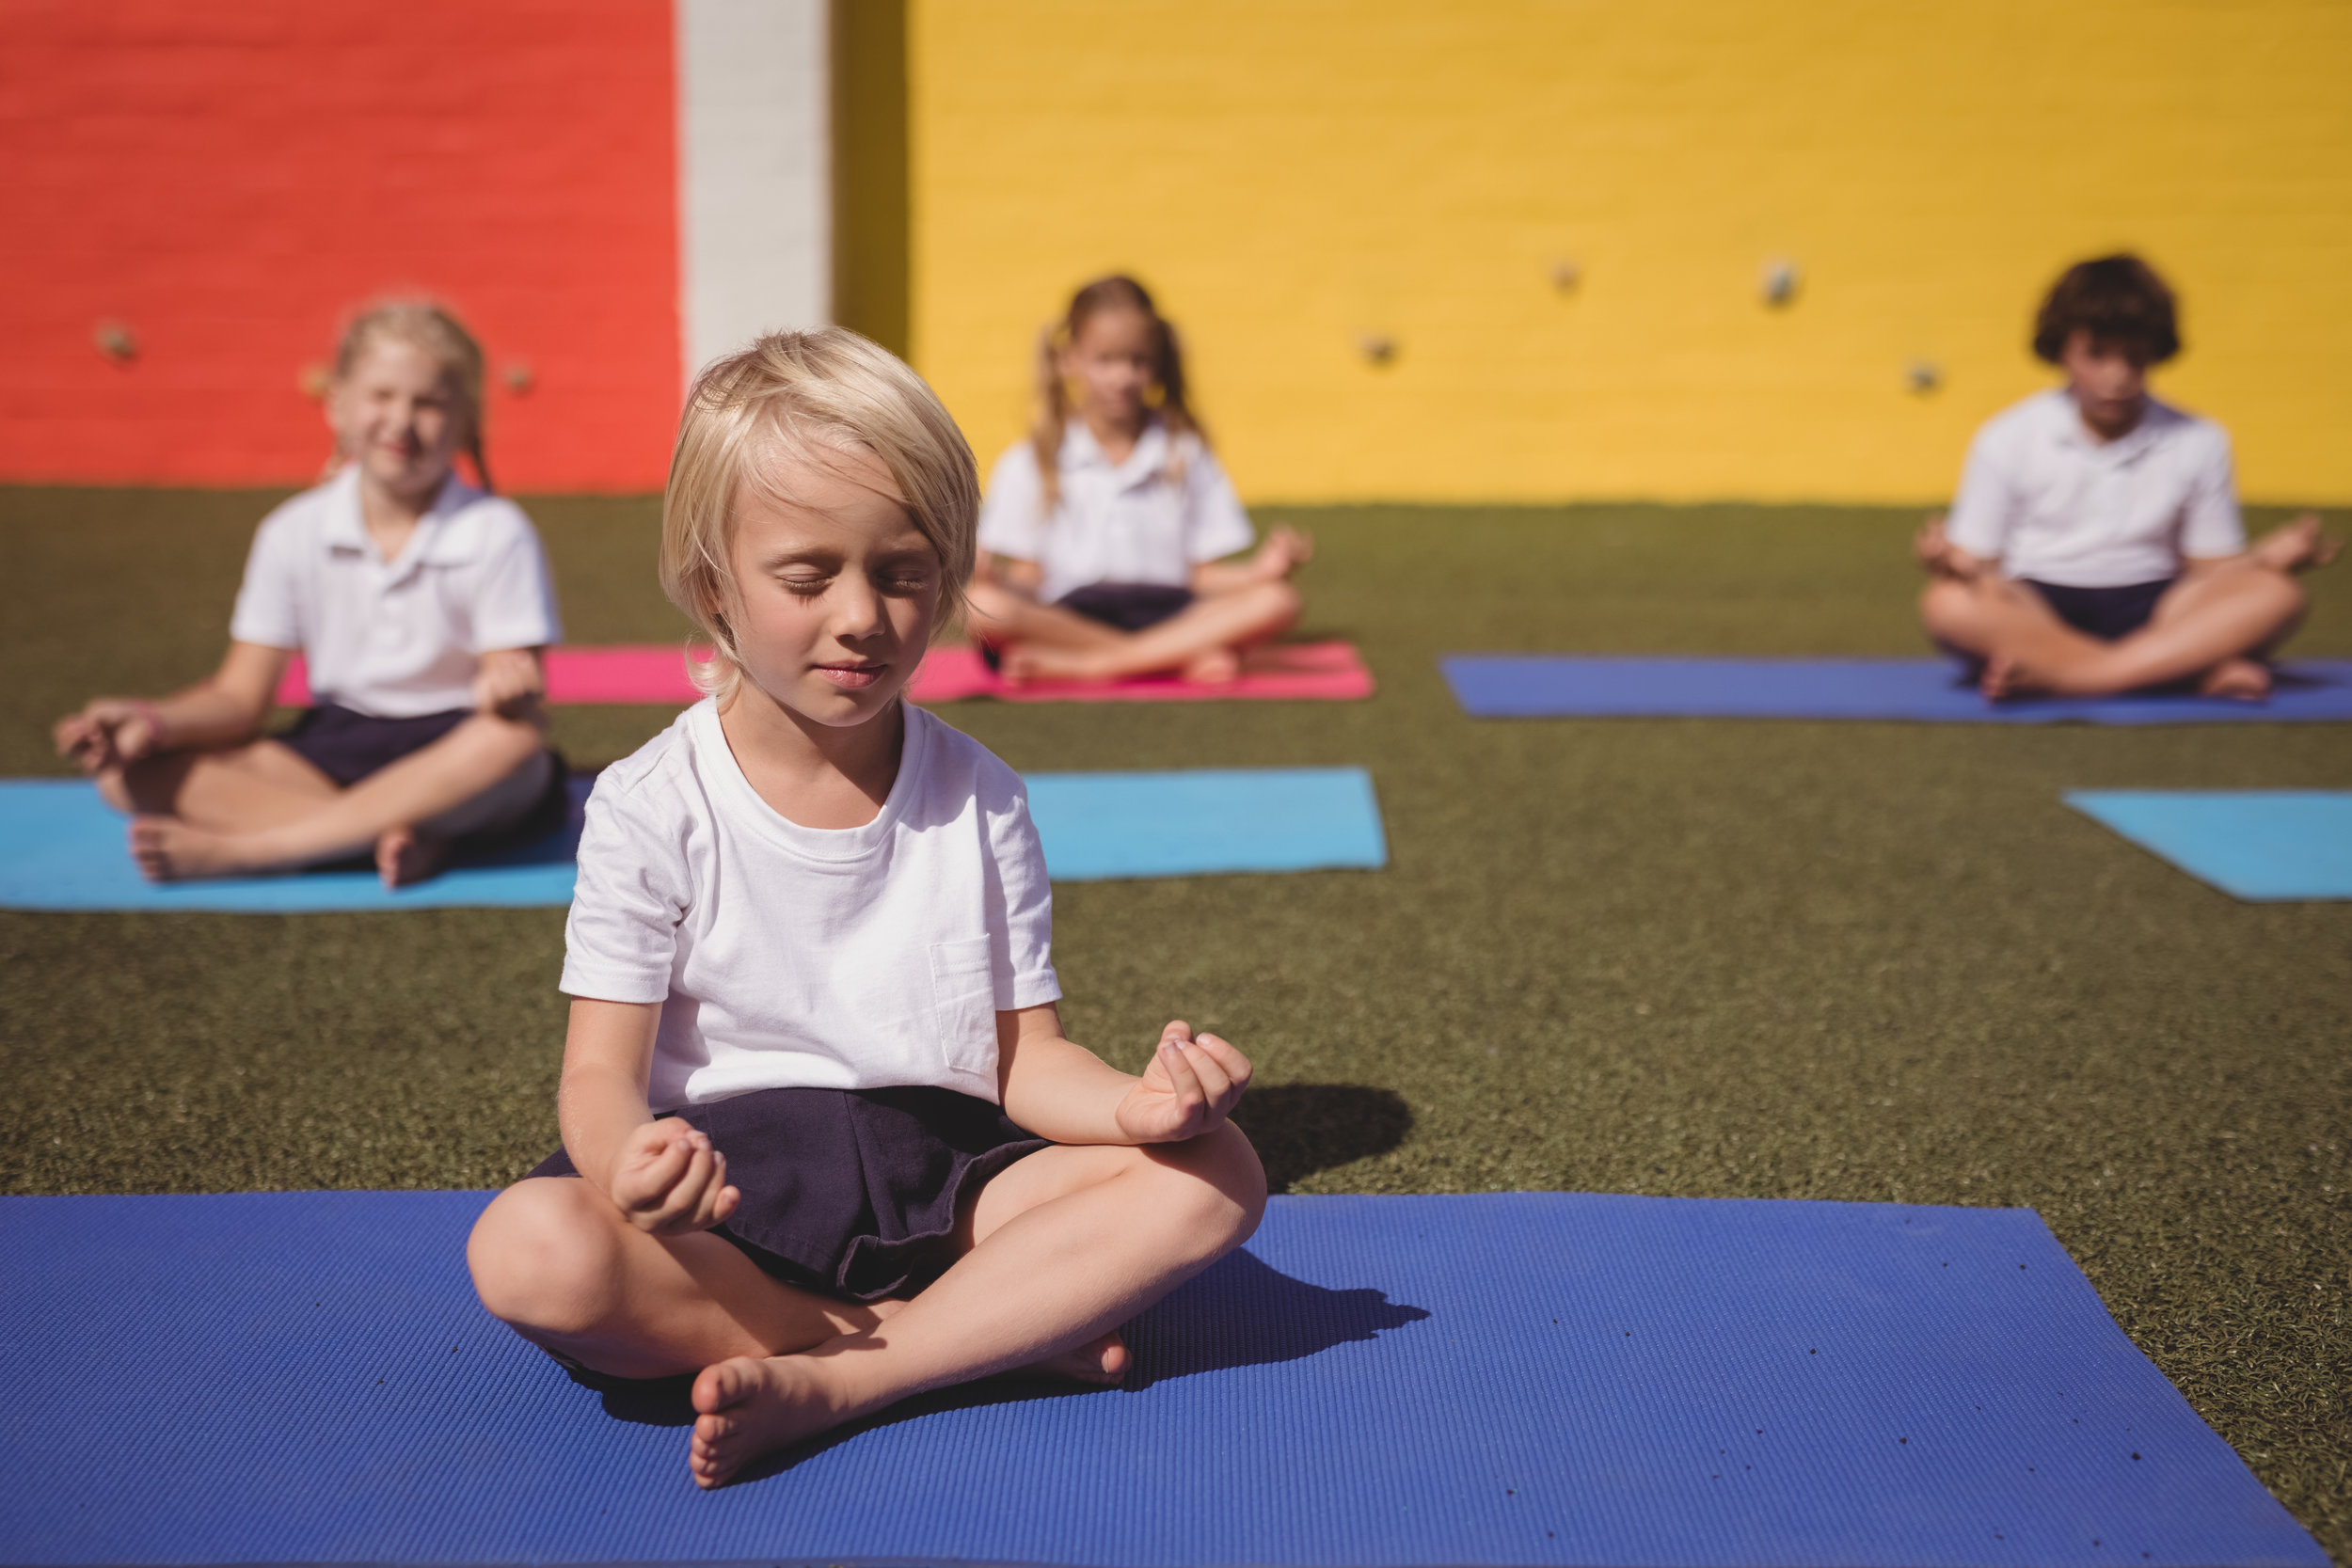 """The research suggests… - """"…that school-based yoga interventions show promise for enhancing positive behaviors, mental state, health, and performance. That the implementation of yoga in schools would be of significant value.""""➤ Learn the research"""